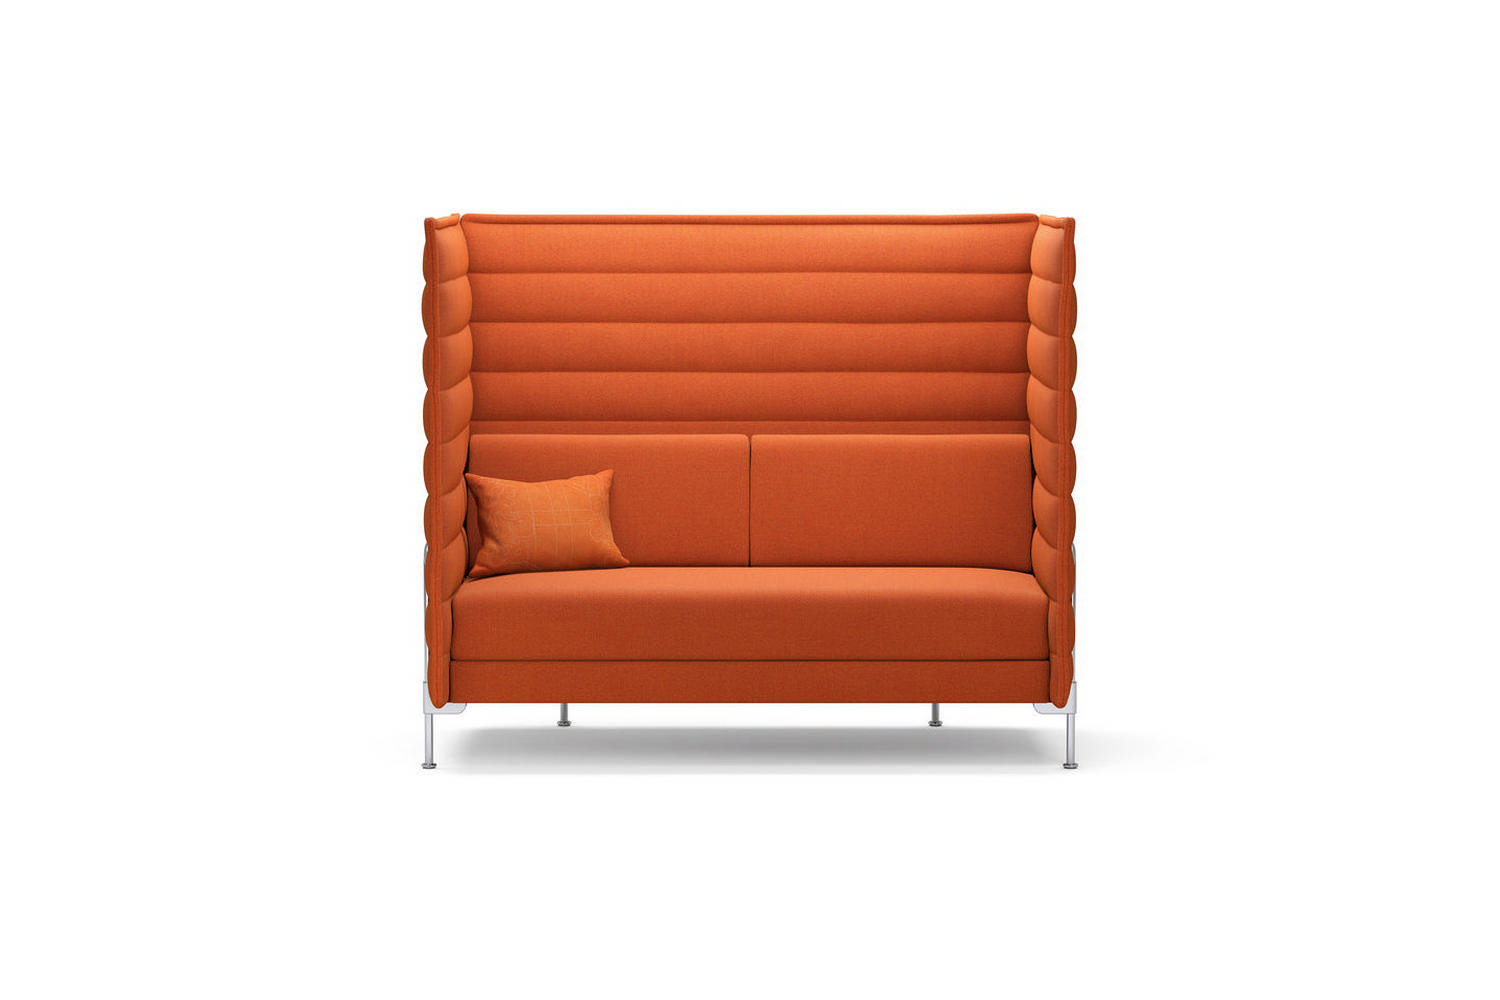 Alcove Highback Sofa Alcove Highback Sofa By Ronan And Erwan Bouroullec For Vitra